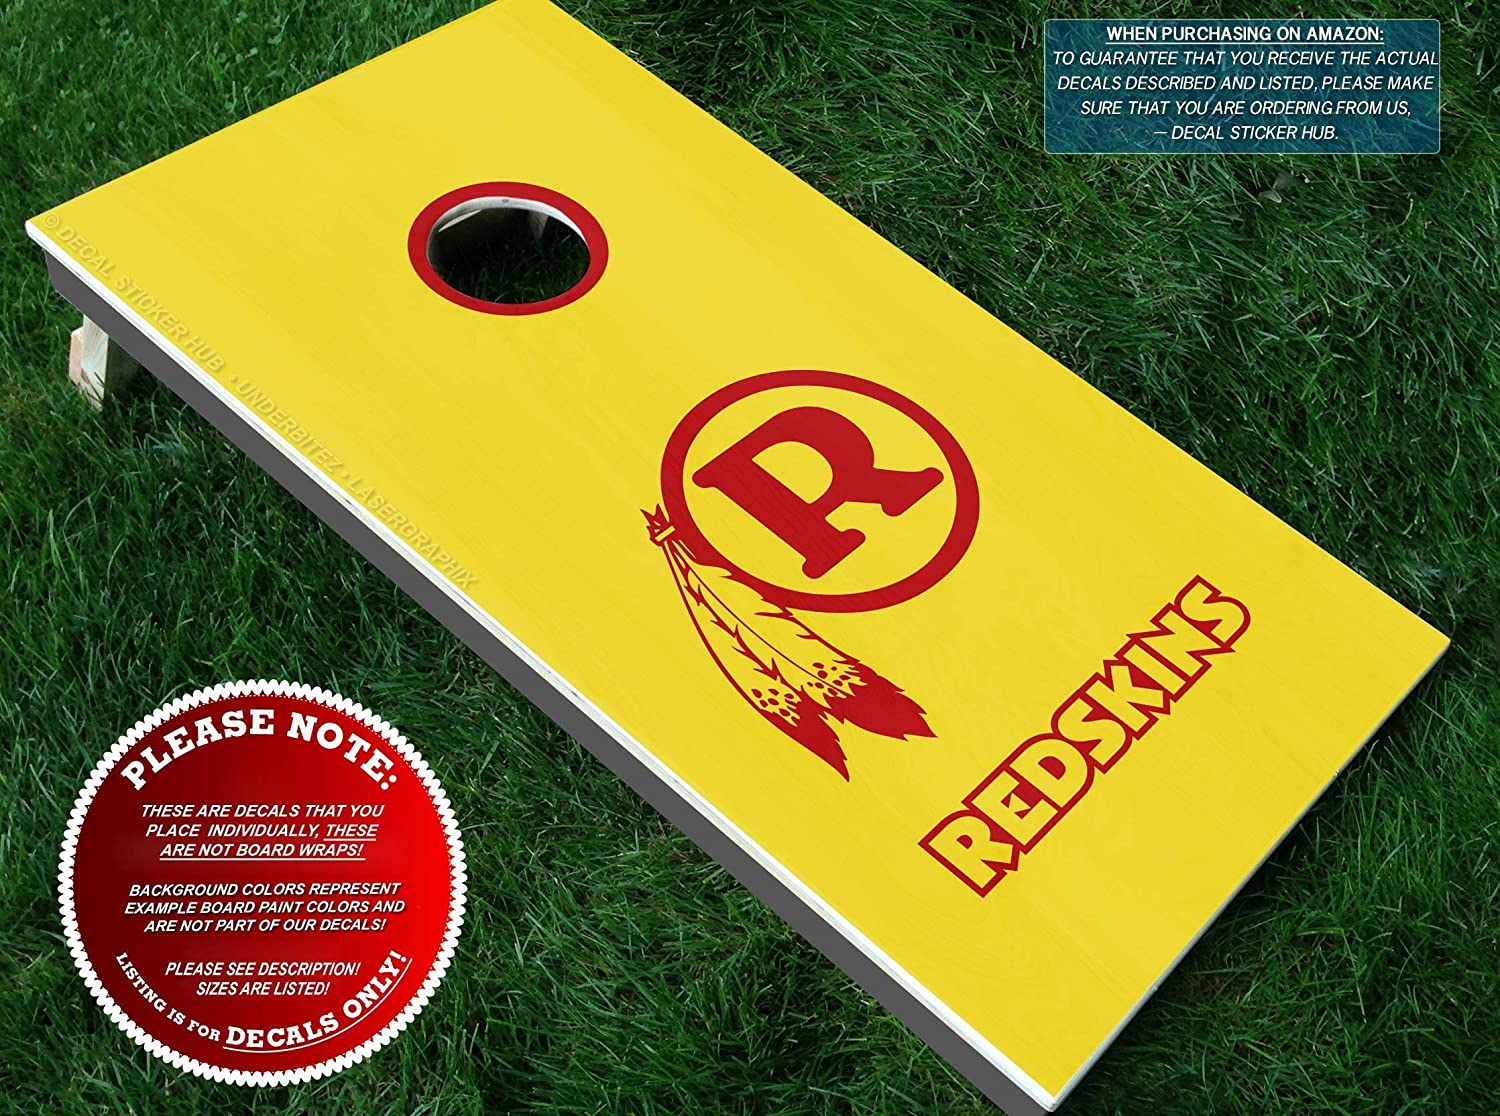 DIY Cornhole Board Building /& Decorating Decal Sticker Hub Large Decals Ring Sticker Color Choice HALF SET Redskins Cornhole Decals